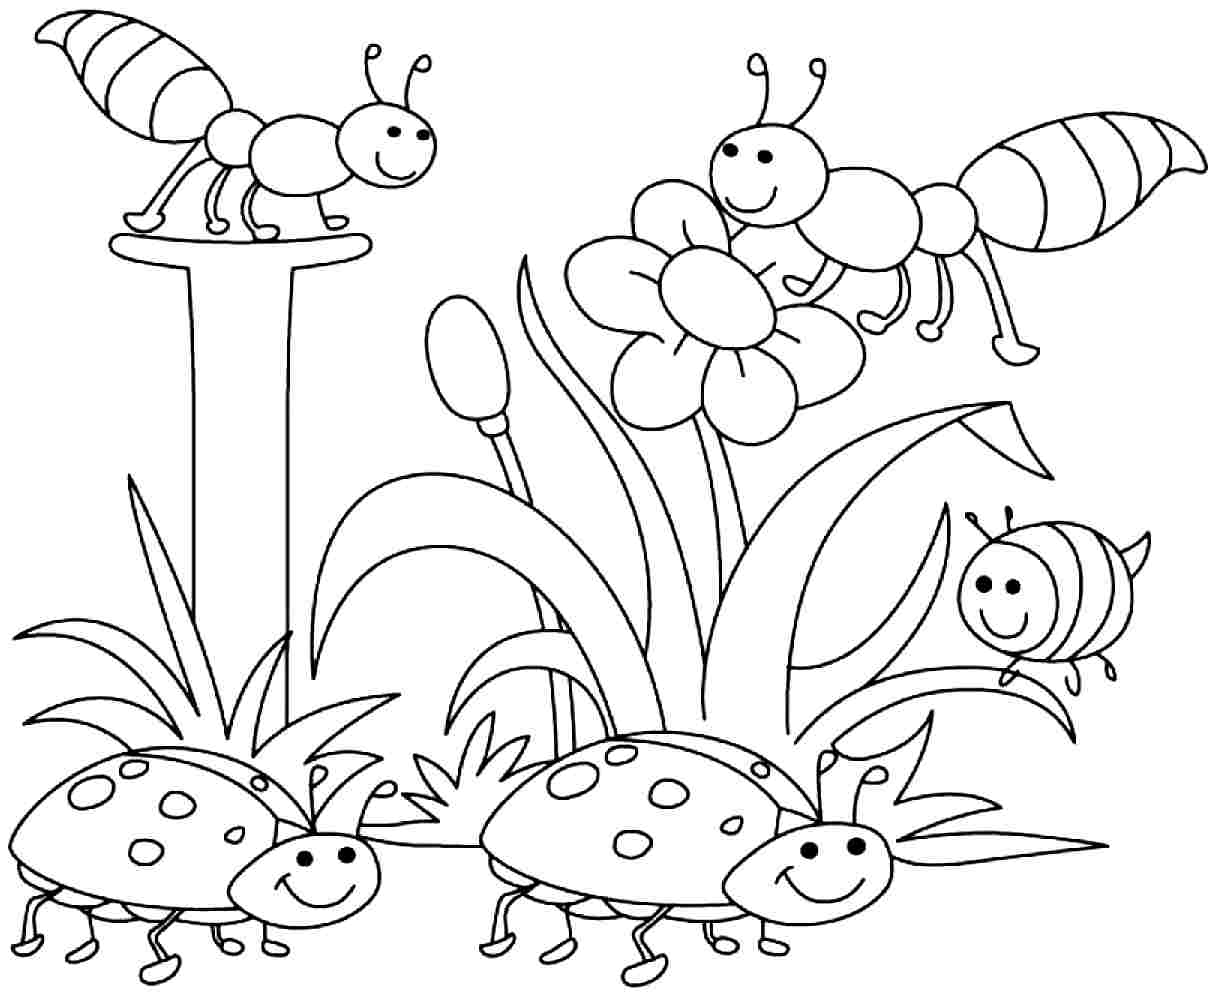 Springtime Coloring Pages (20 Pictures) - Colorine.net | 9433